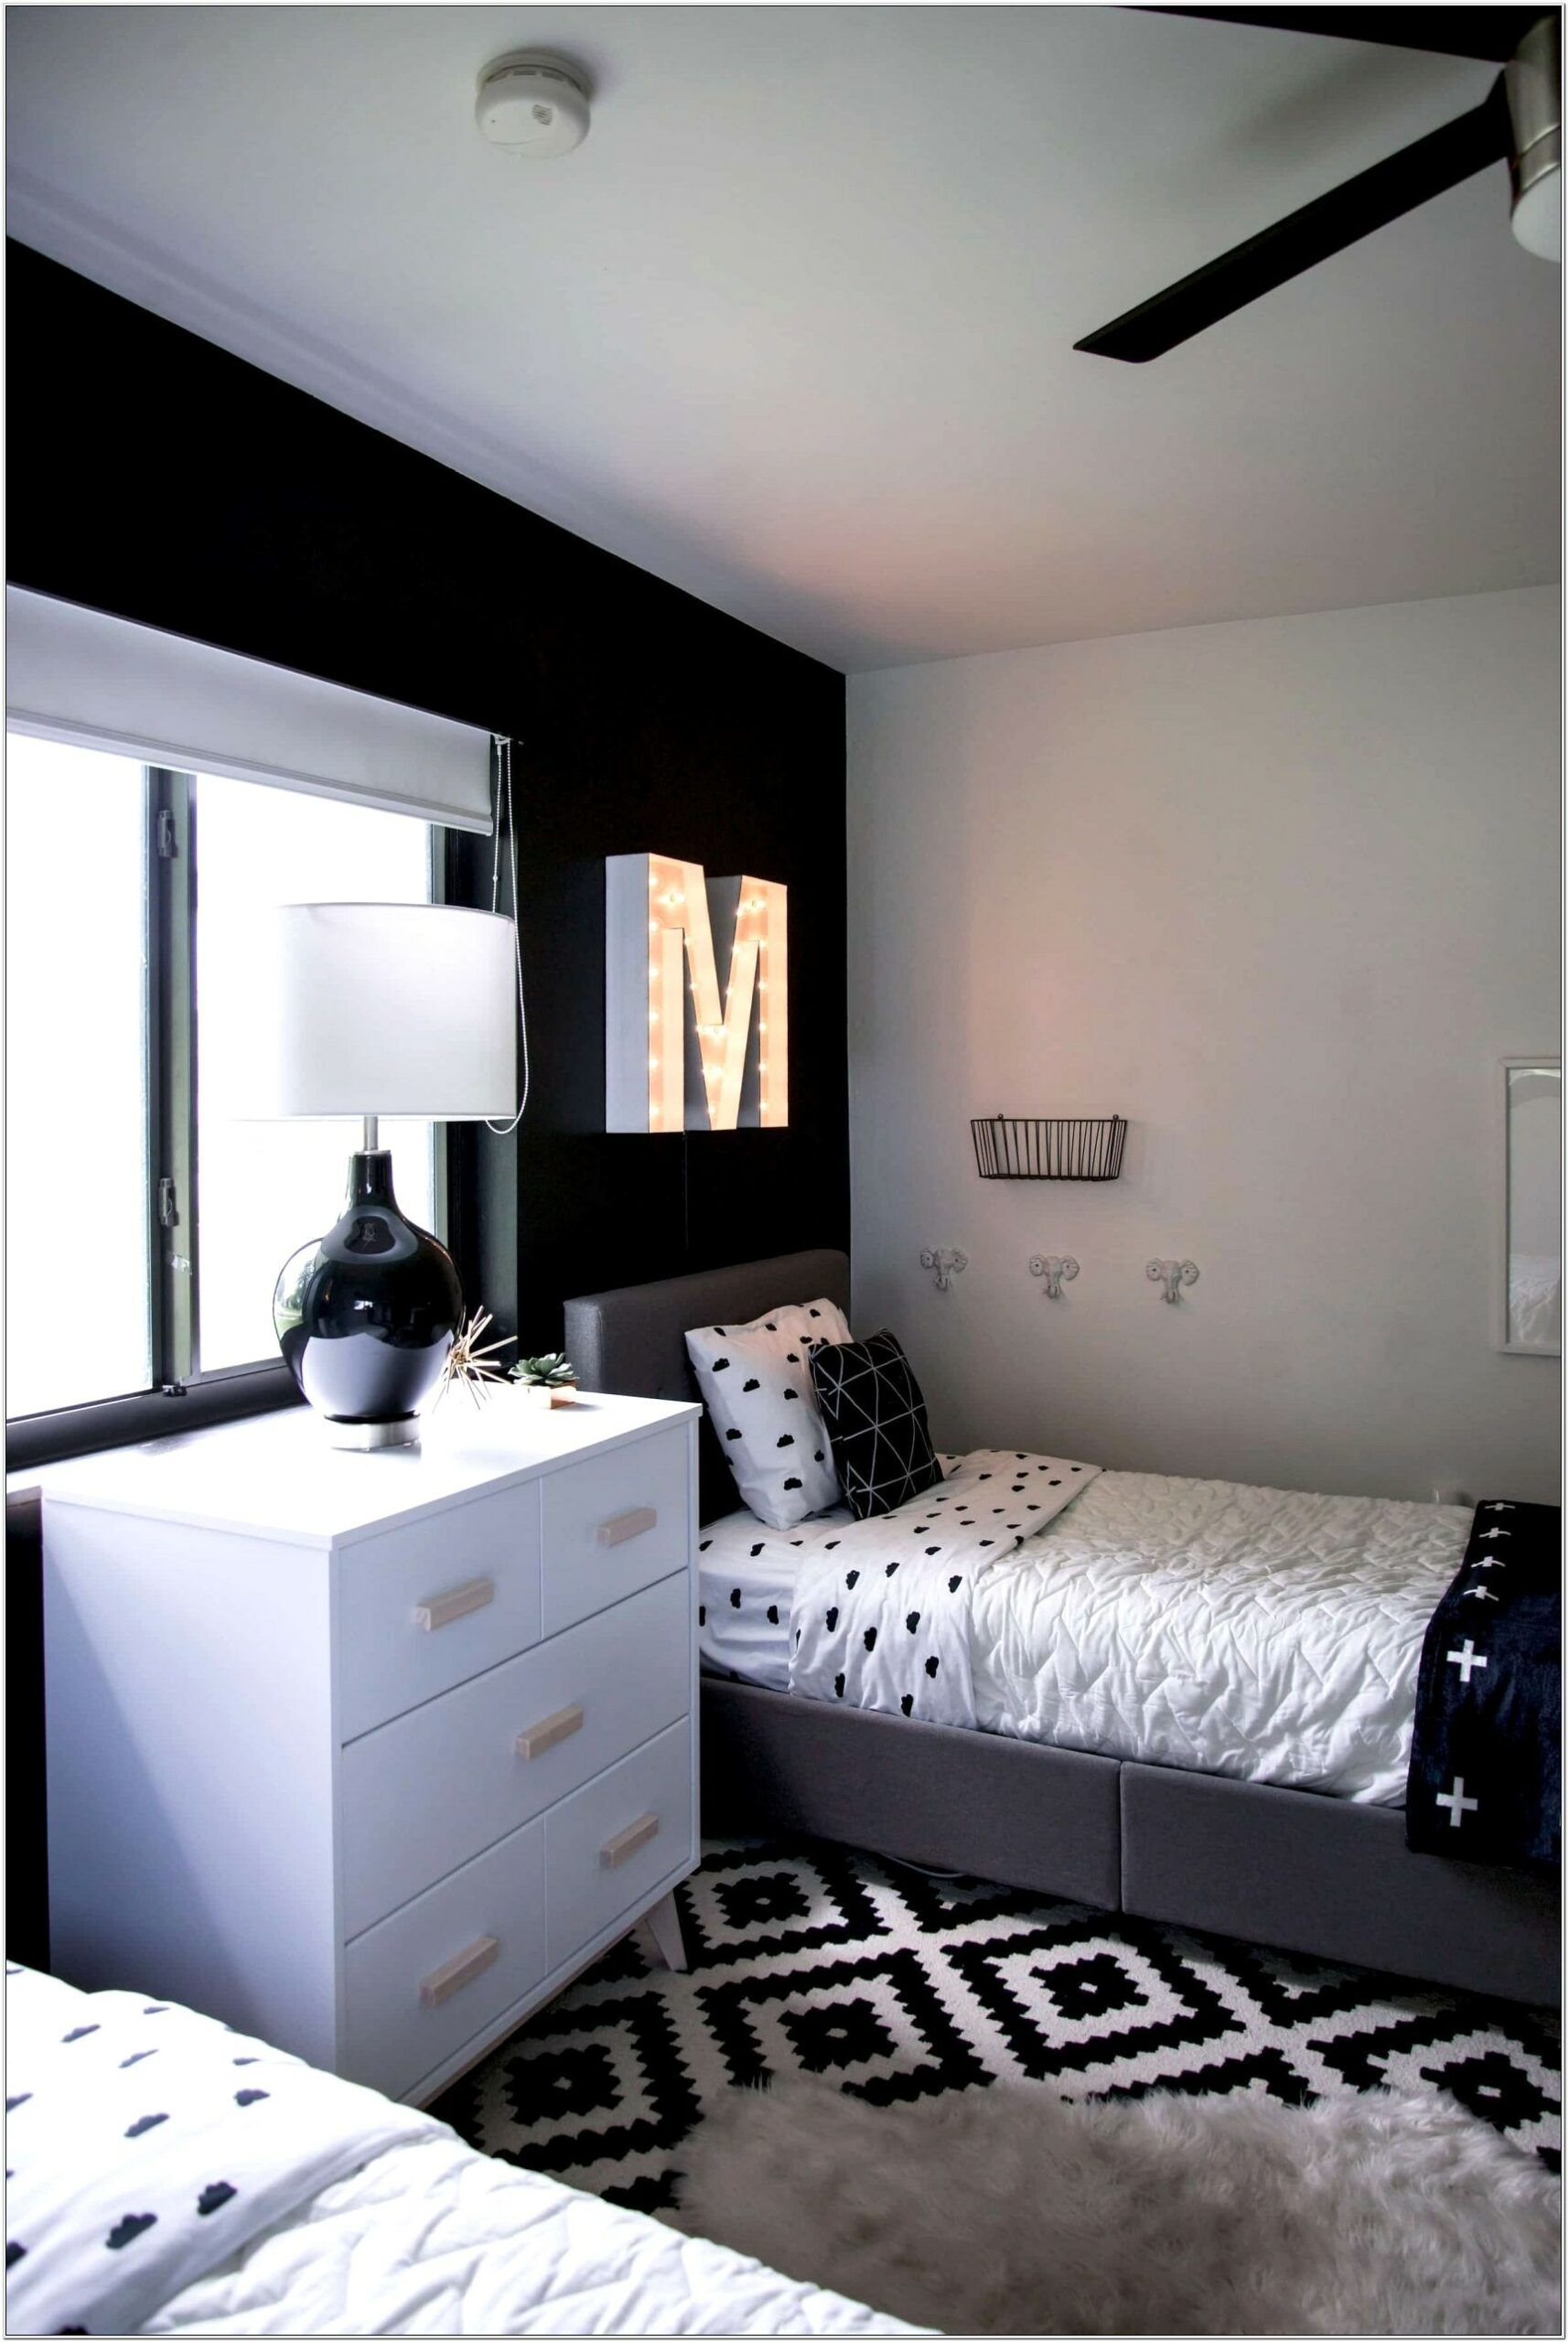 Black And White Small Bedroom Decor In 2020 Modern Kids Room Modern Kids Small Bedroom Decor